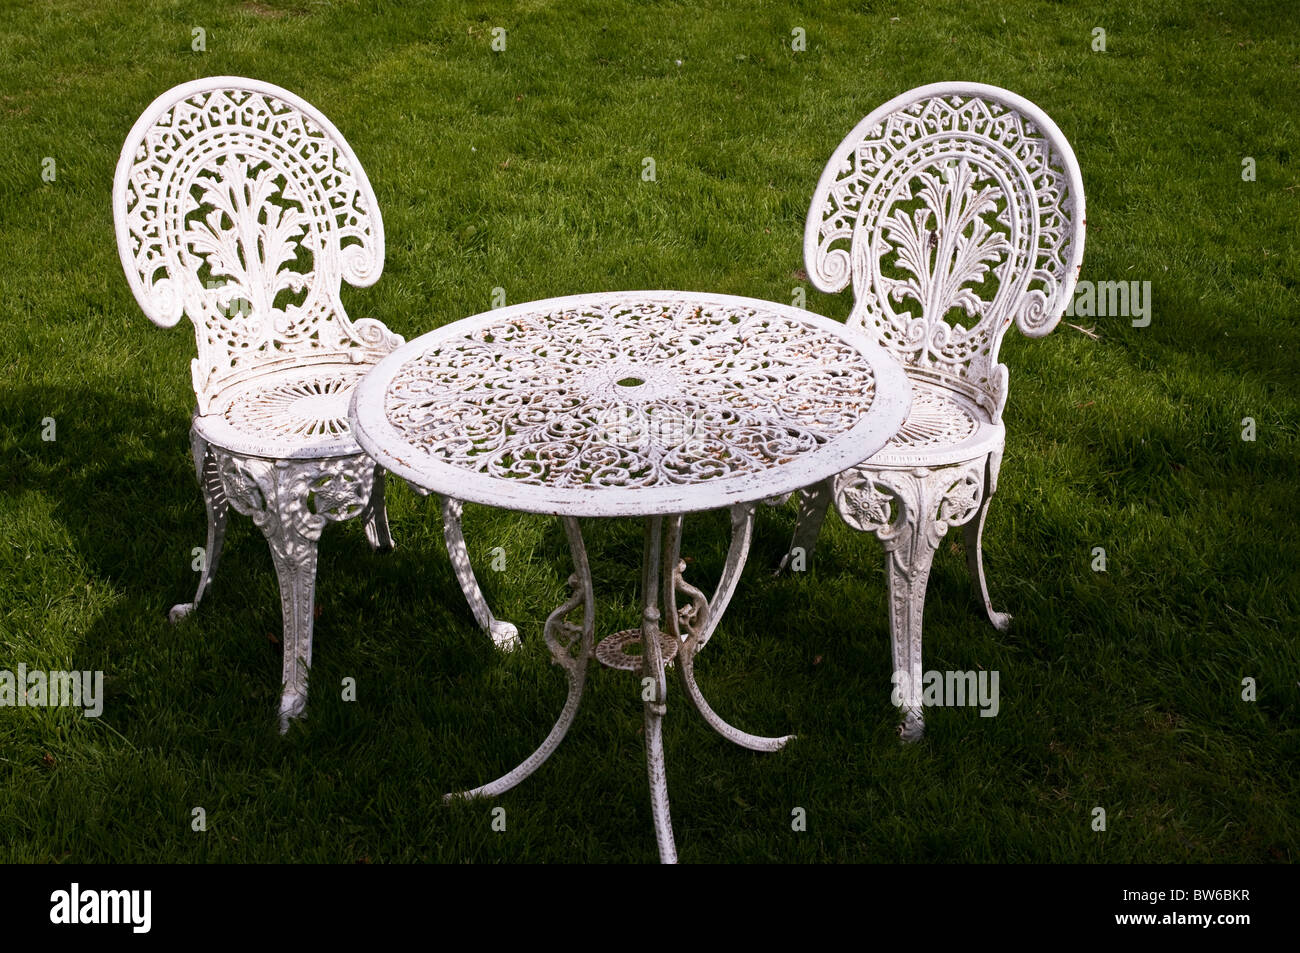 old metal chairs white dining room johannesburg style and table on a garden lawn dartmoor stock